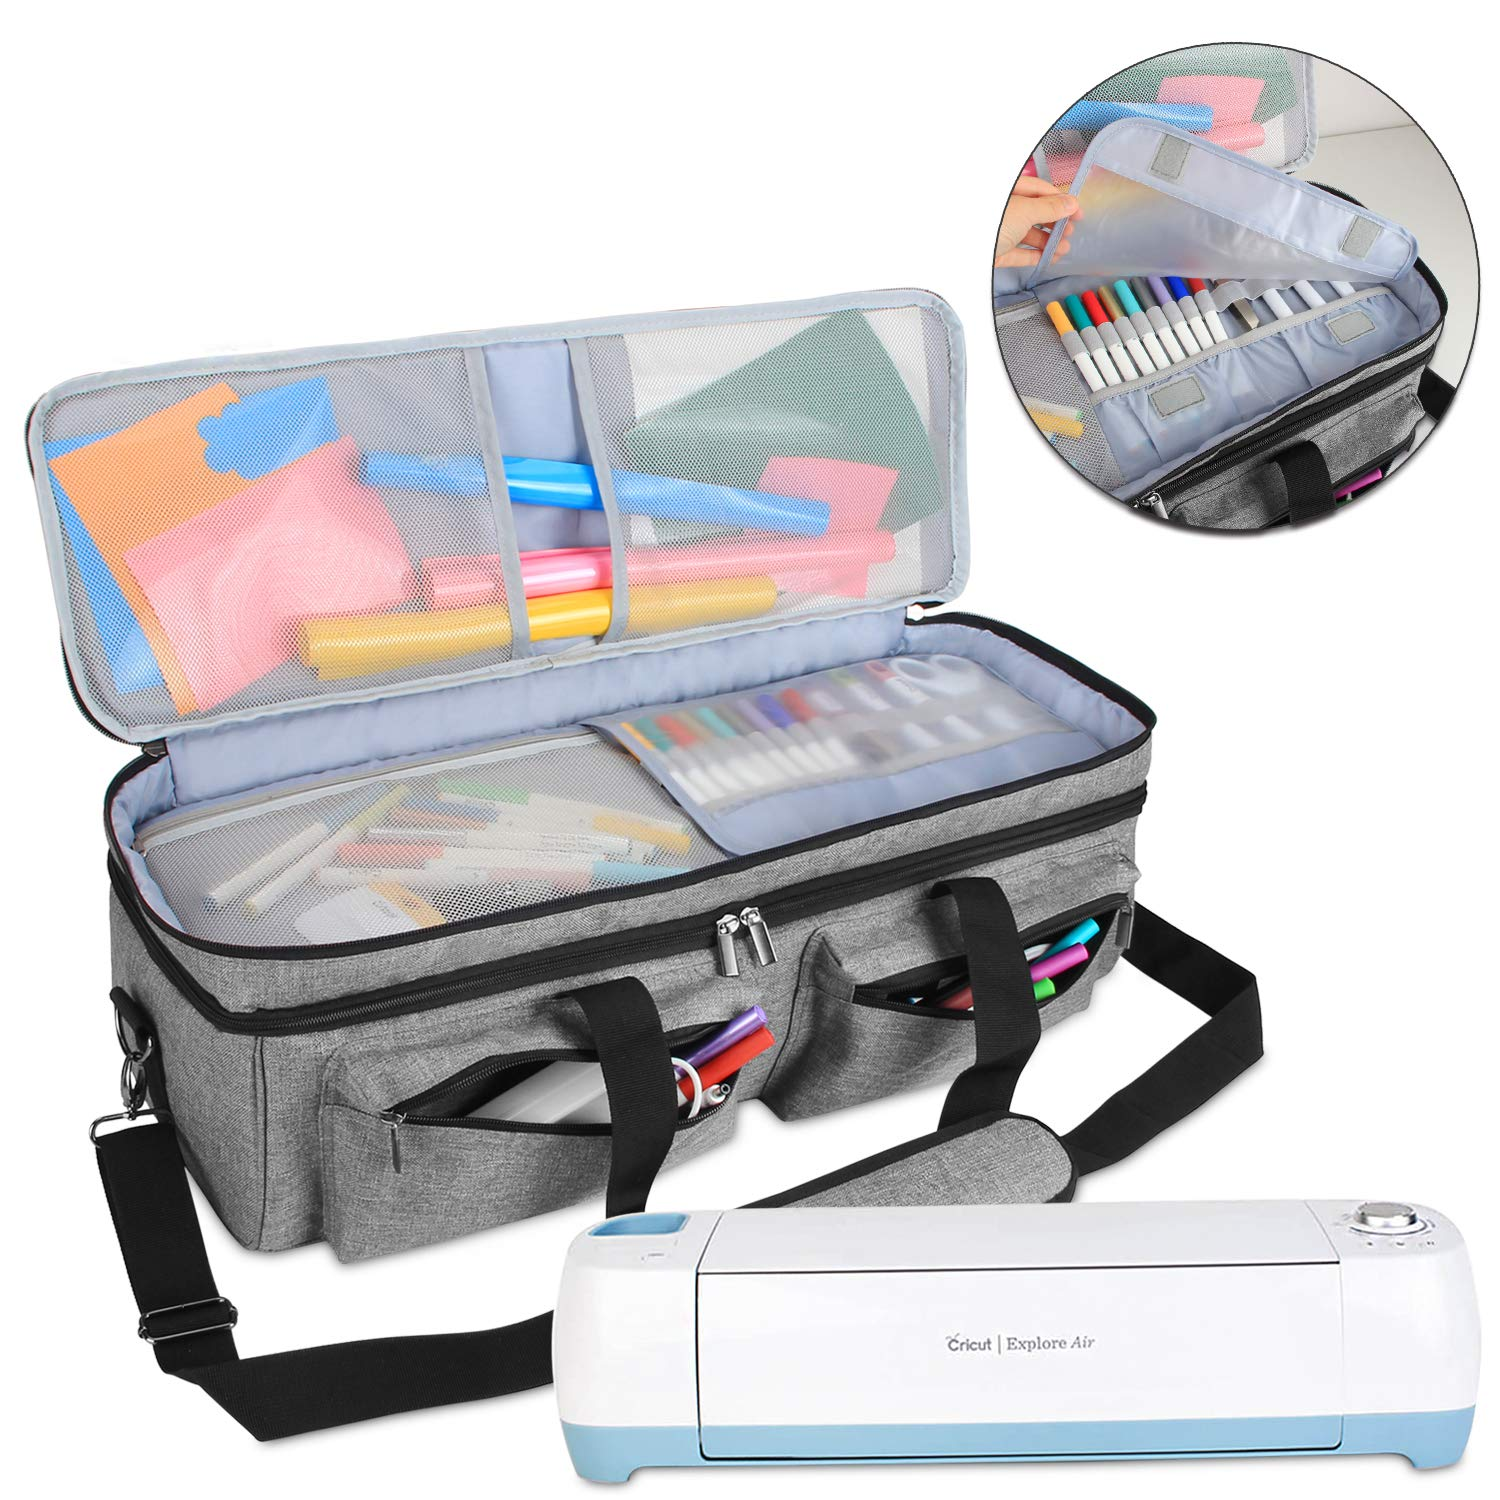 Luxja Double-Layer Bag Compatible with Cricut Explore Air (Air2) and Maker, Carrying Bag Compatible with Cricut Die-Cut Machine and Supplies (Bag Only, Patent Pending), Gray